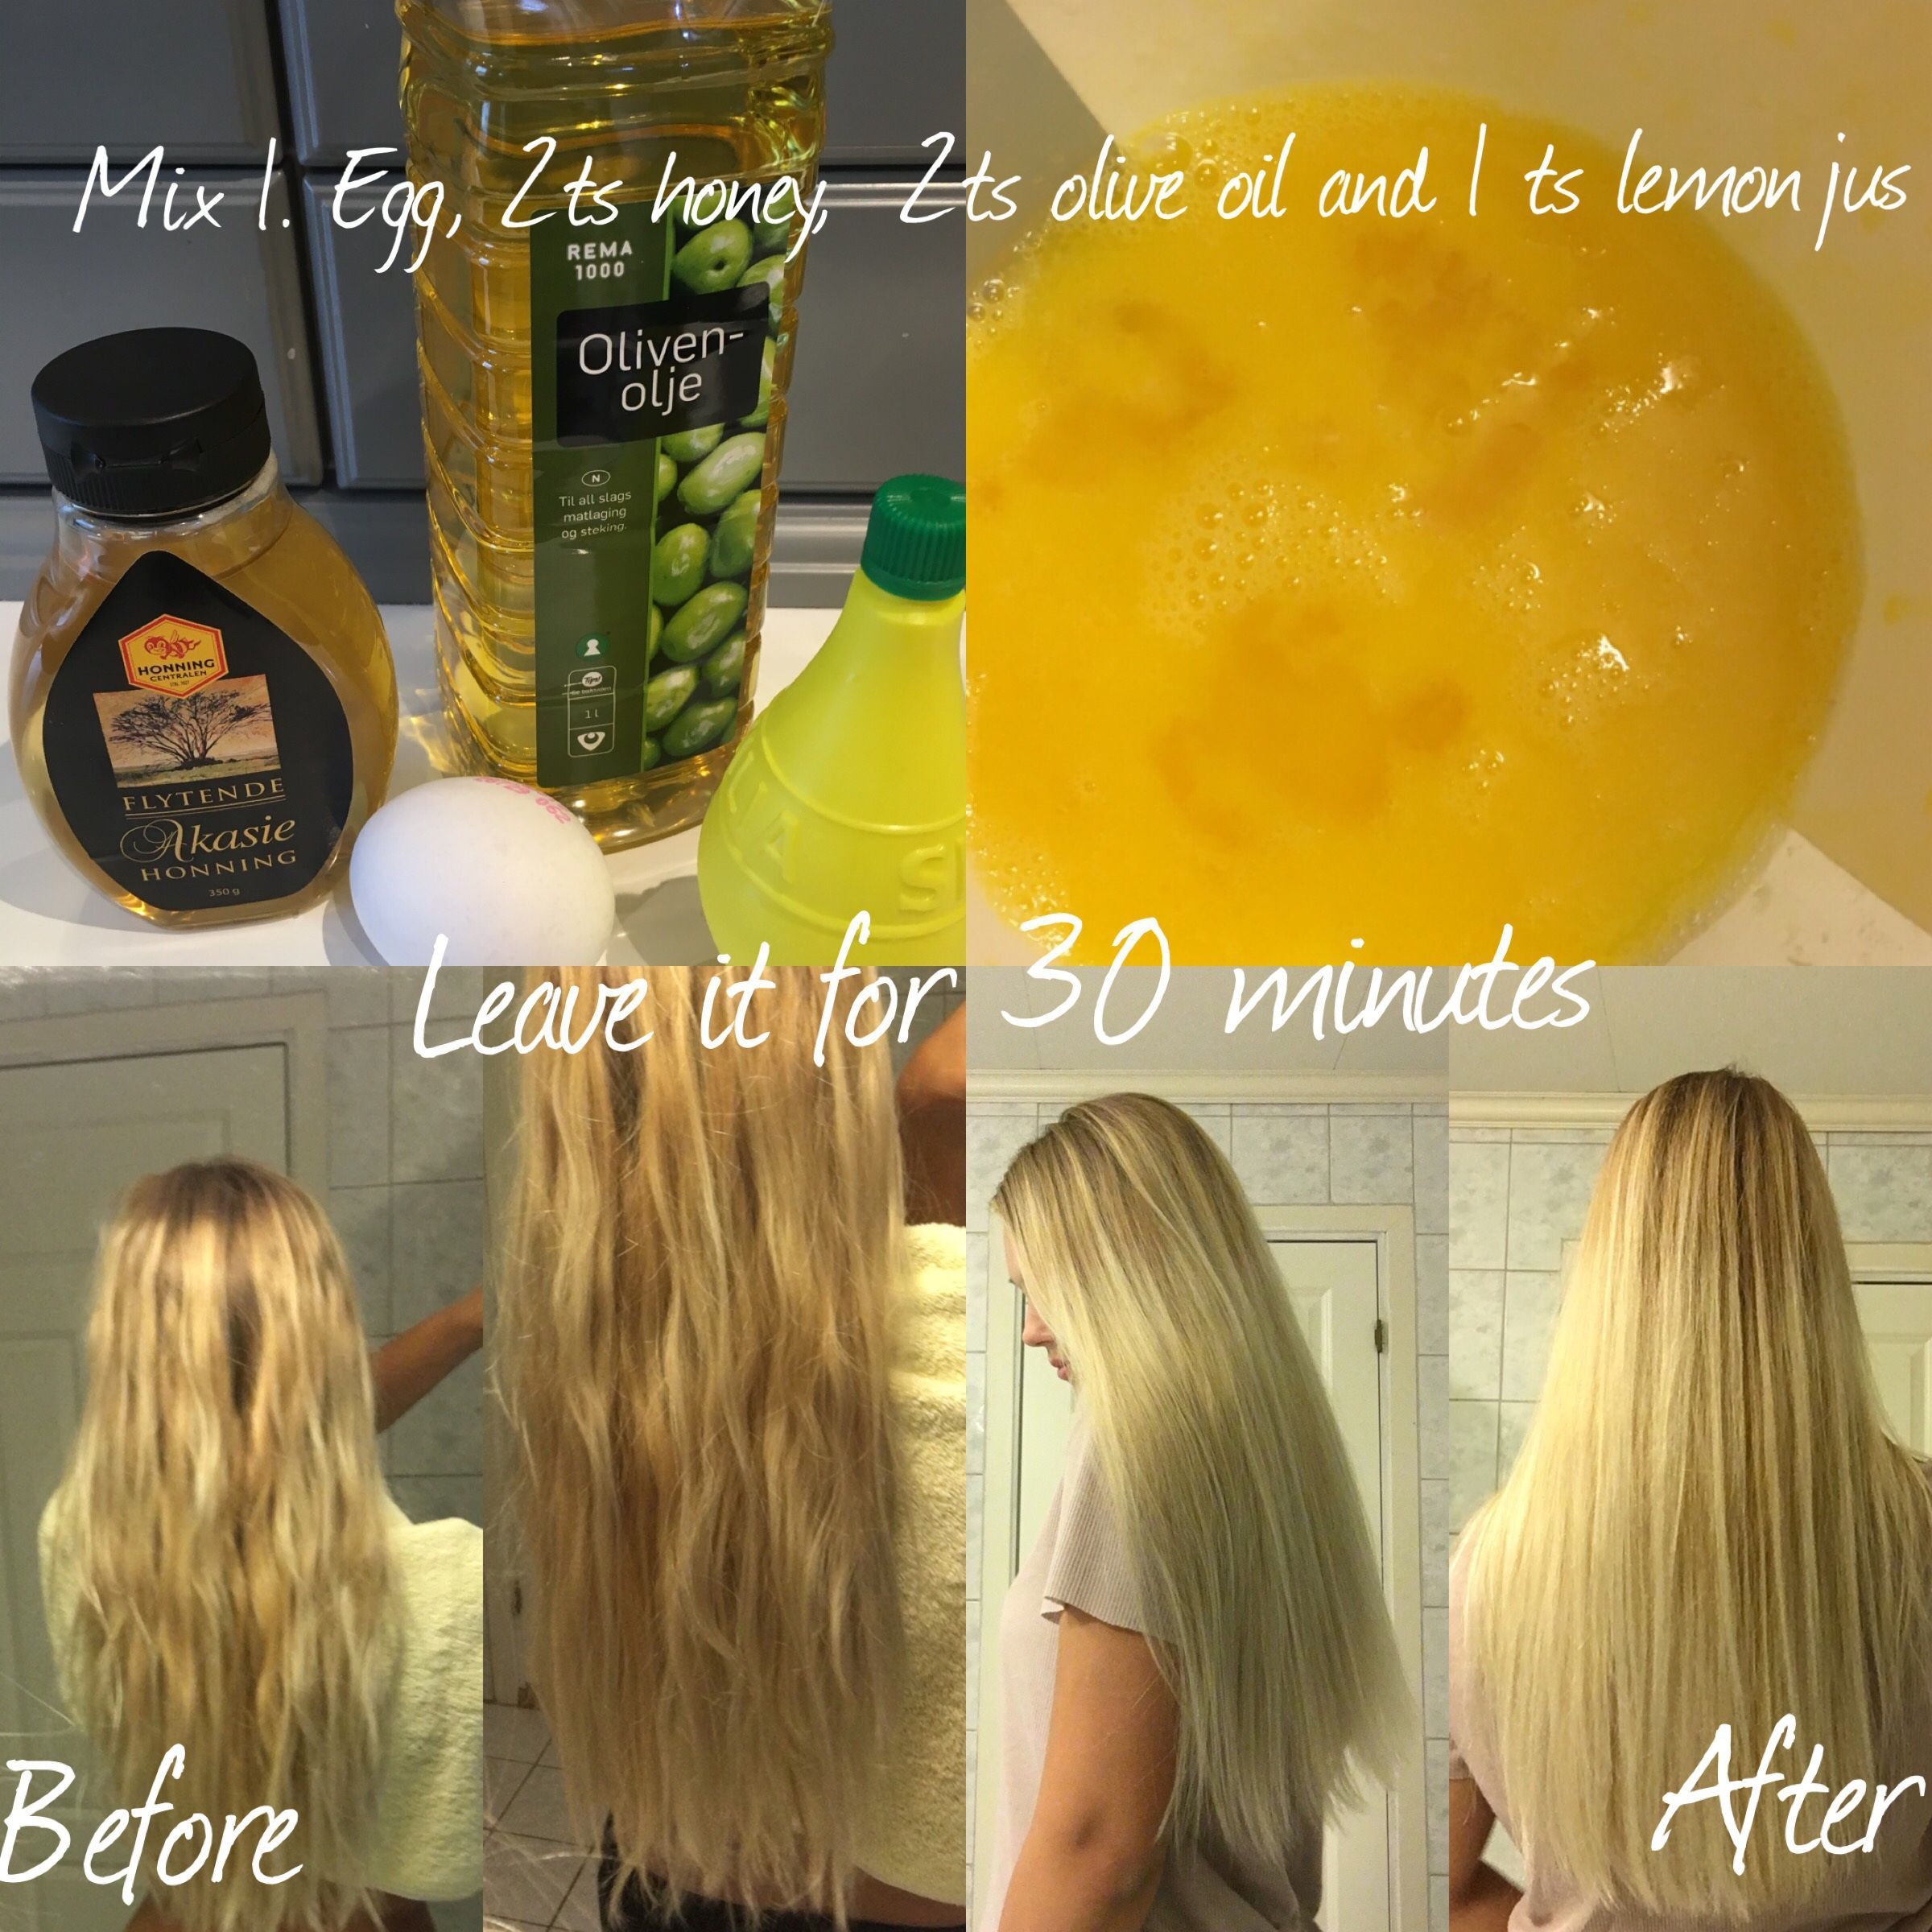 Mix 1 Egg 2 Ts Honey 2 Ts Olive Oil And 1 Ts Off Lemon Jus Leave It For 30 Minutes And Then You Hair Nutrients Homemade Hair Products Hair Mask For Growth